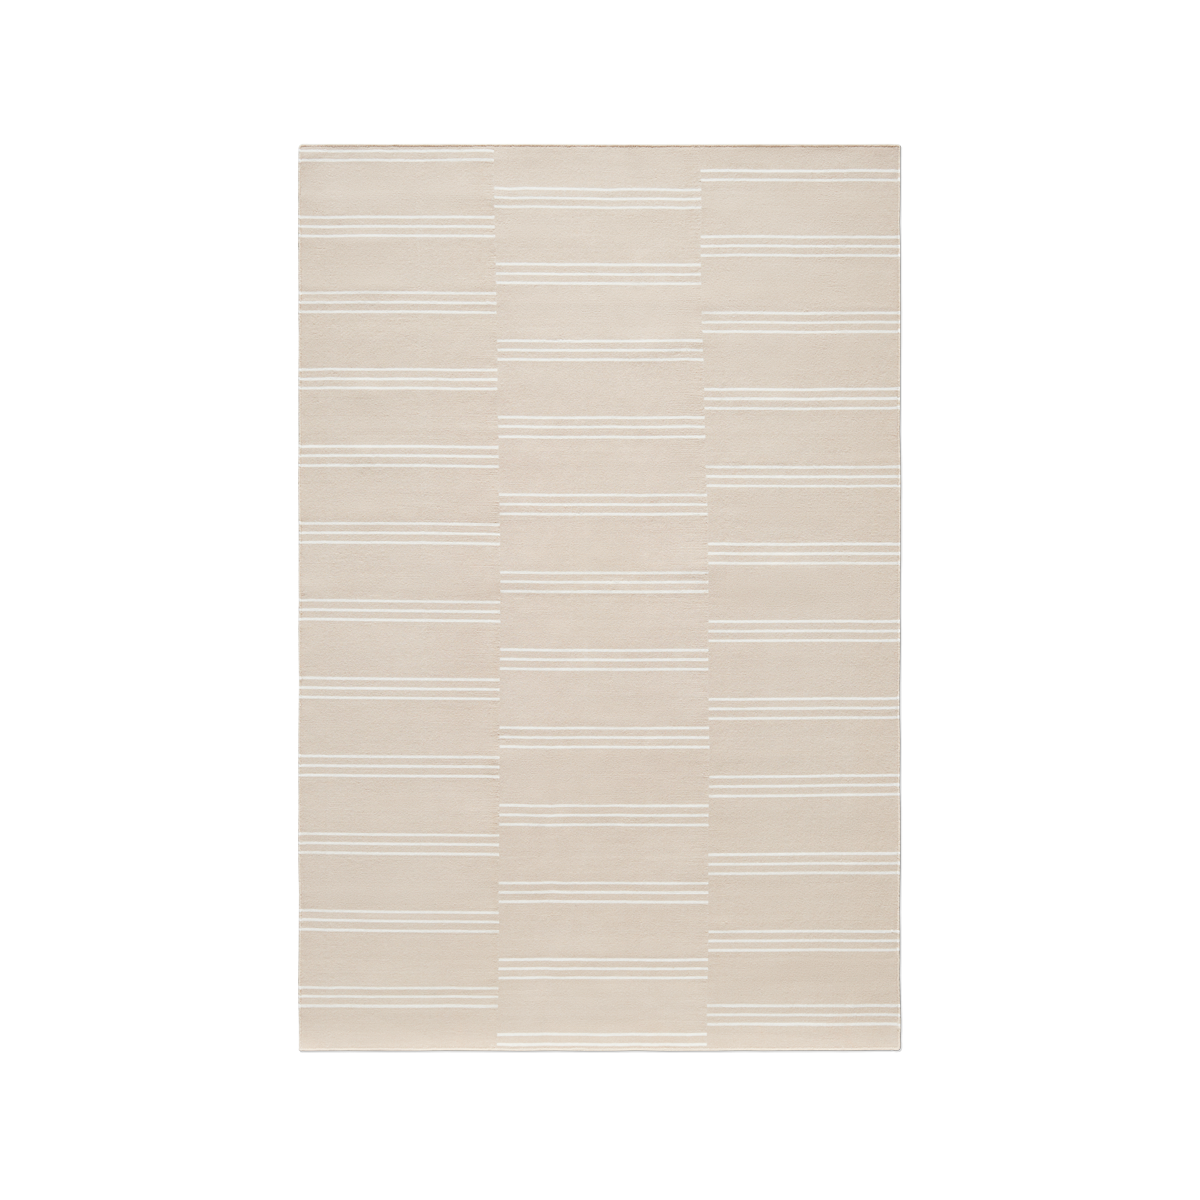 Product image of the flatweave rug Stripes in the color Sand. The rug itself is a light blue color with white stripes creating a pattern.